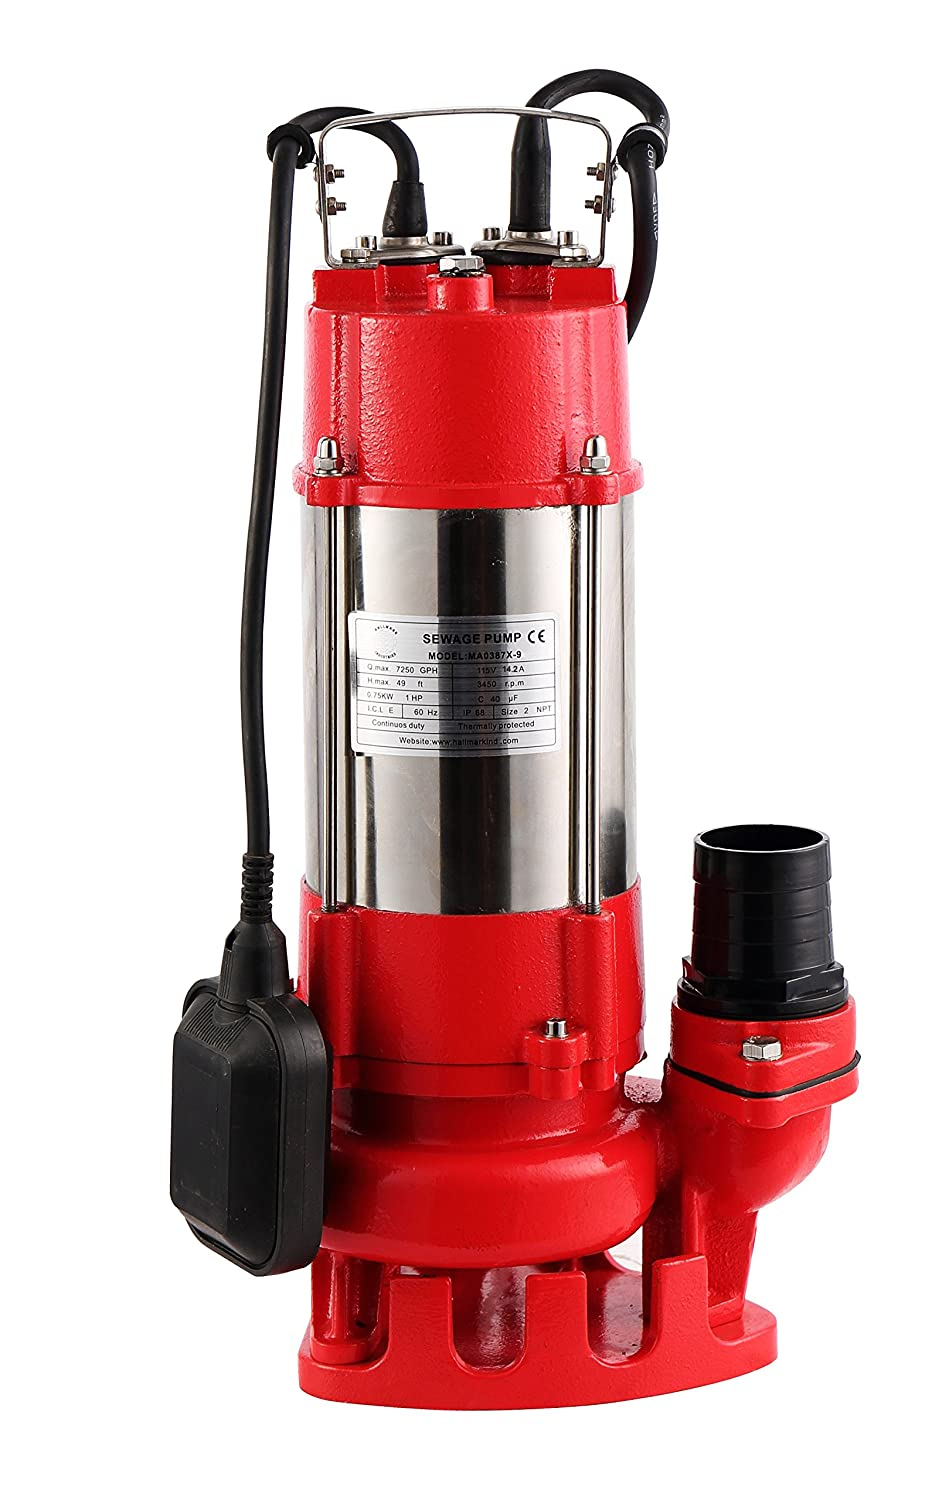 Hallmark Industries MA0387X-8 Sewage Pump with Float Switch, 5600 gpm, Stainless Steel, Heavy Duty, 3/4 hp, 115V, 38' Lift, 20' Cable